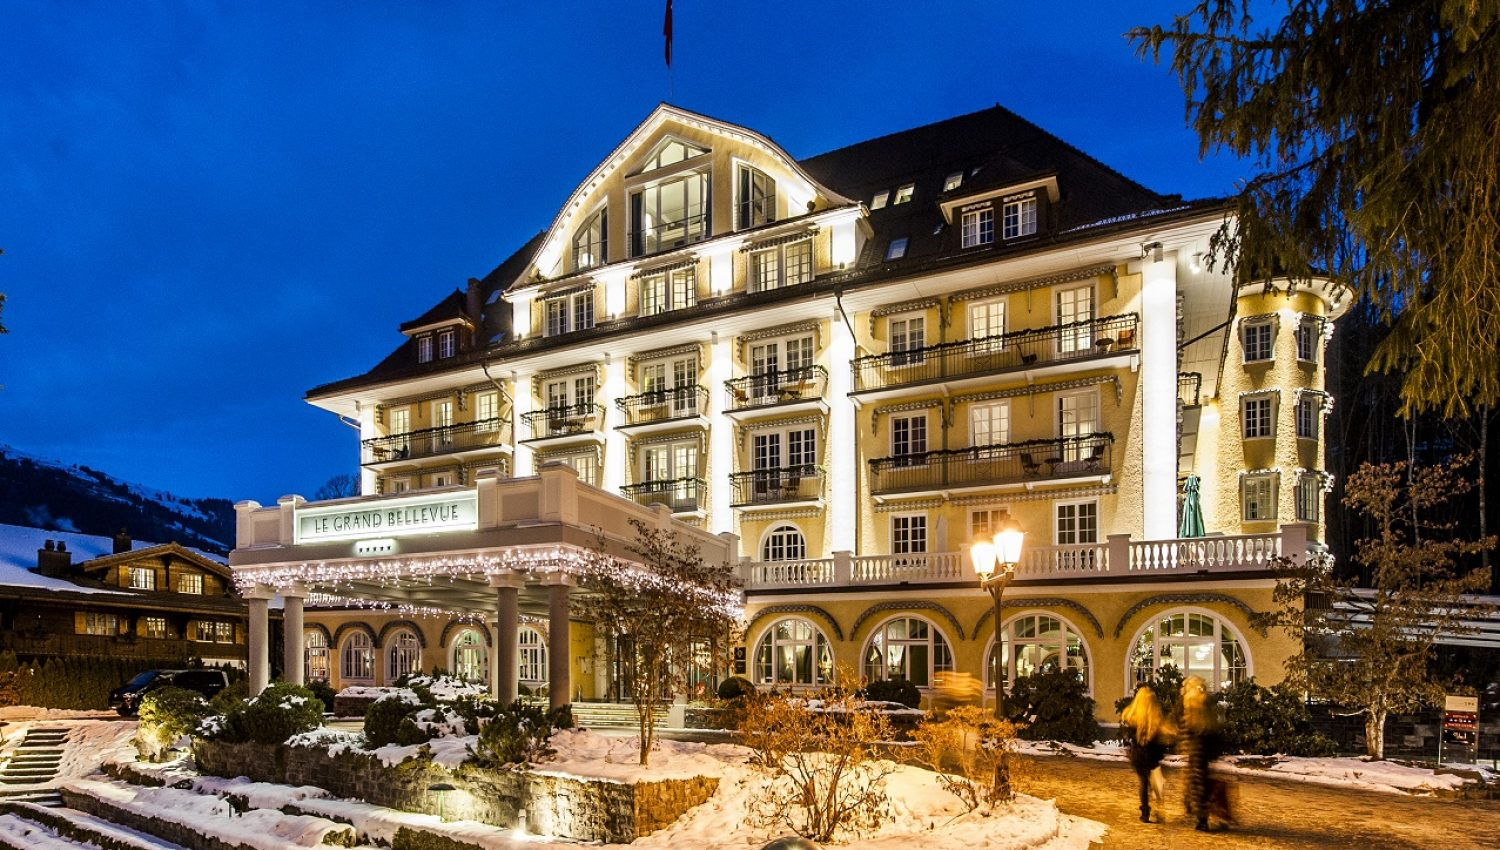 Hotel le grand bellevue in gstaad switzerland white for Le grand hotel